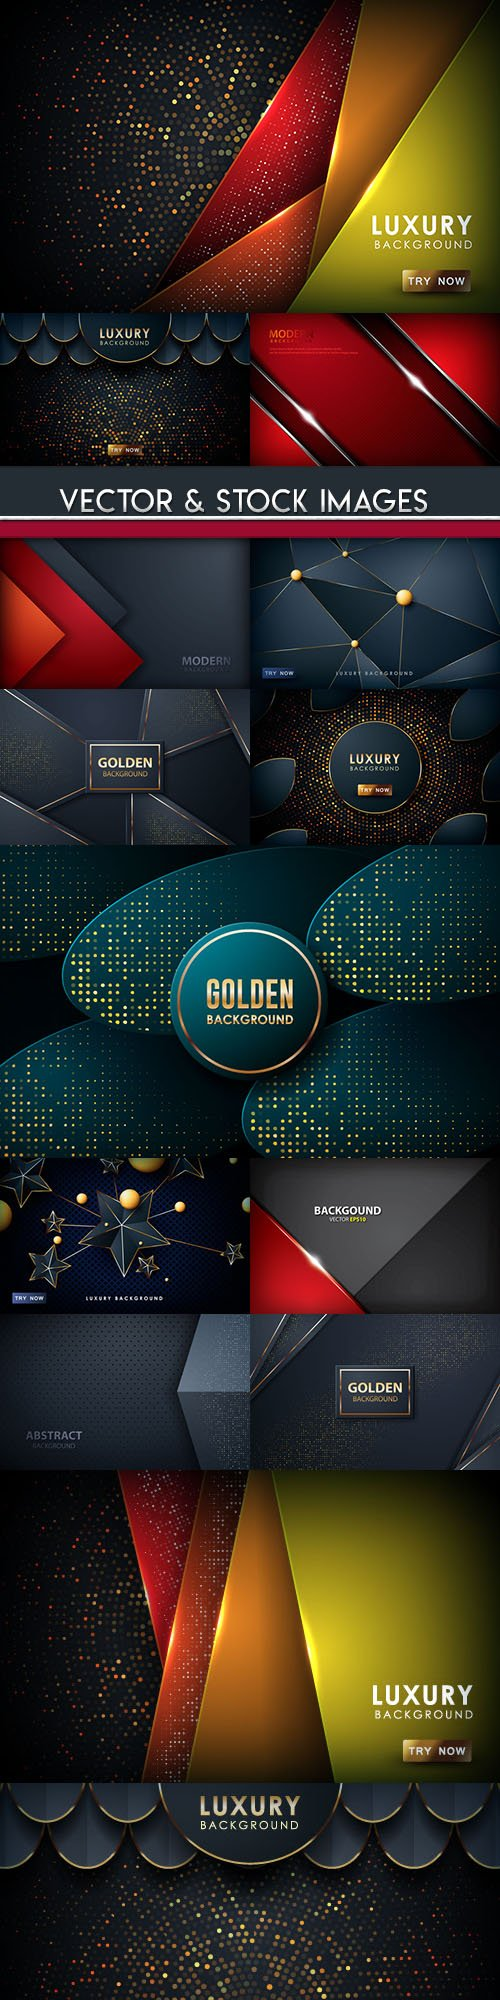 Bright light and gold abstract background collection 2